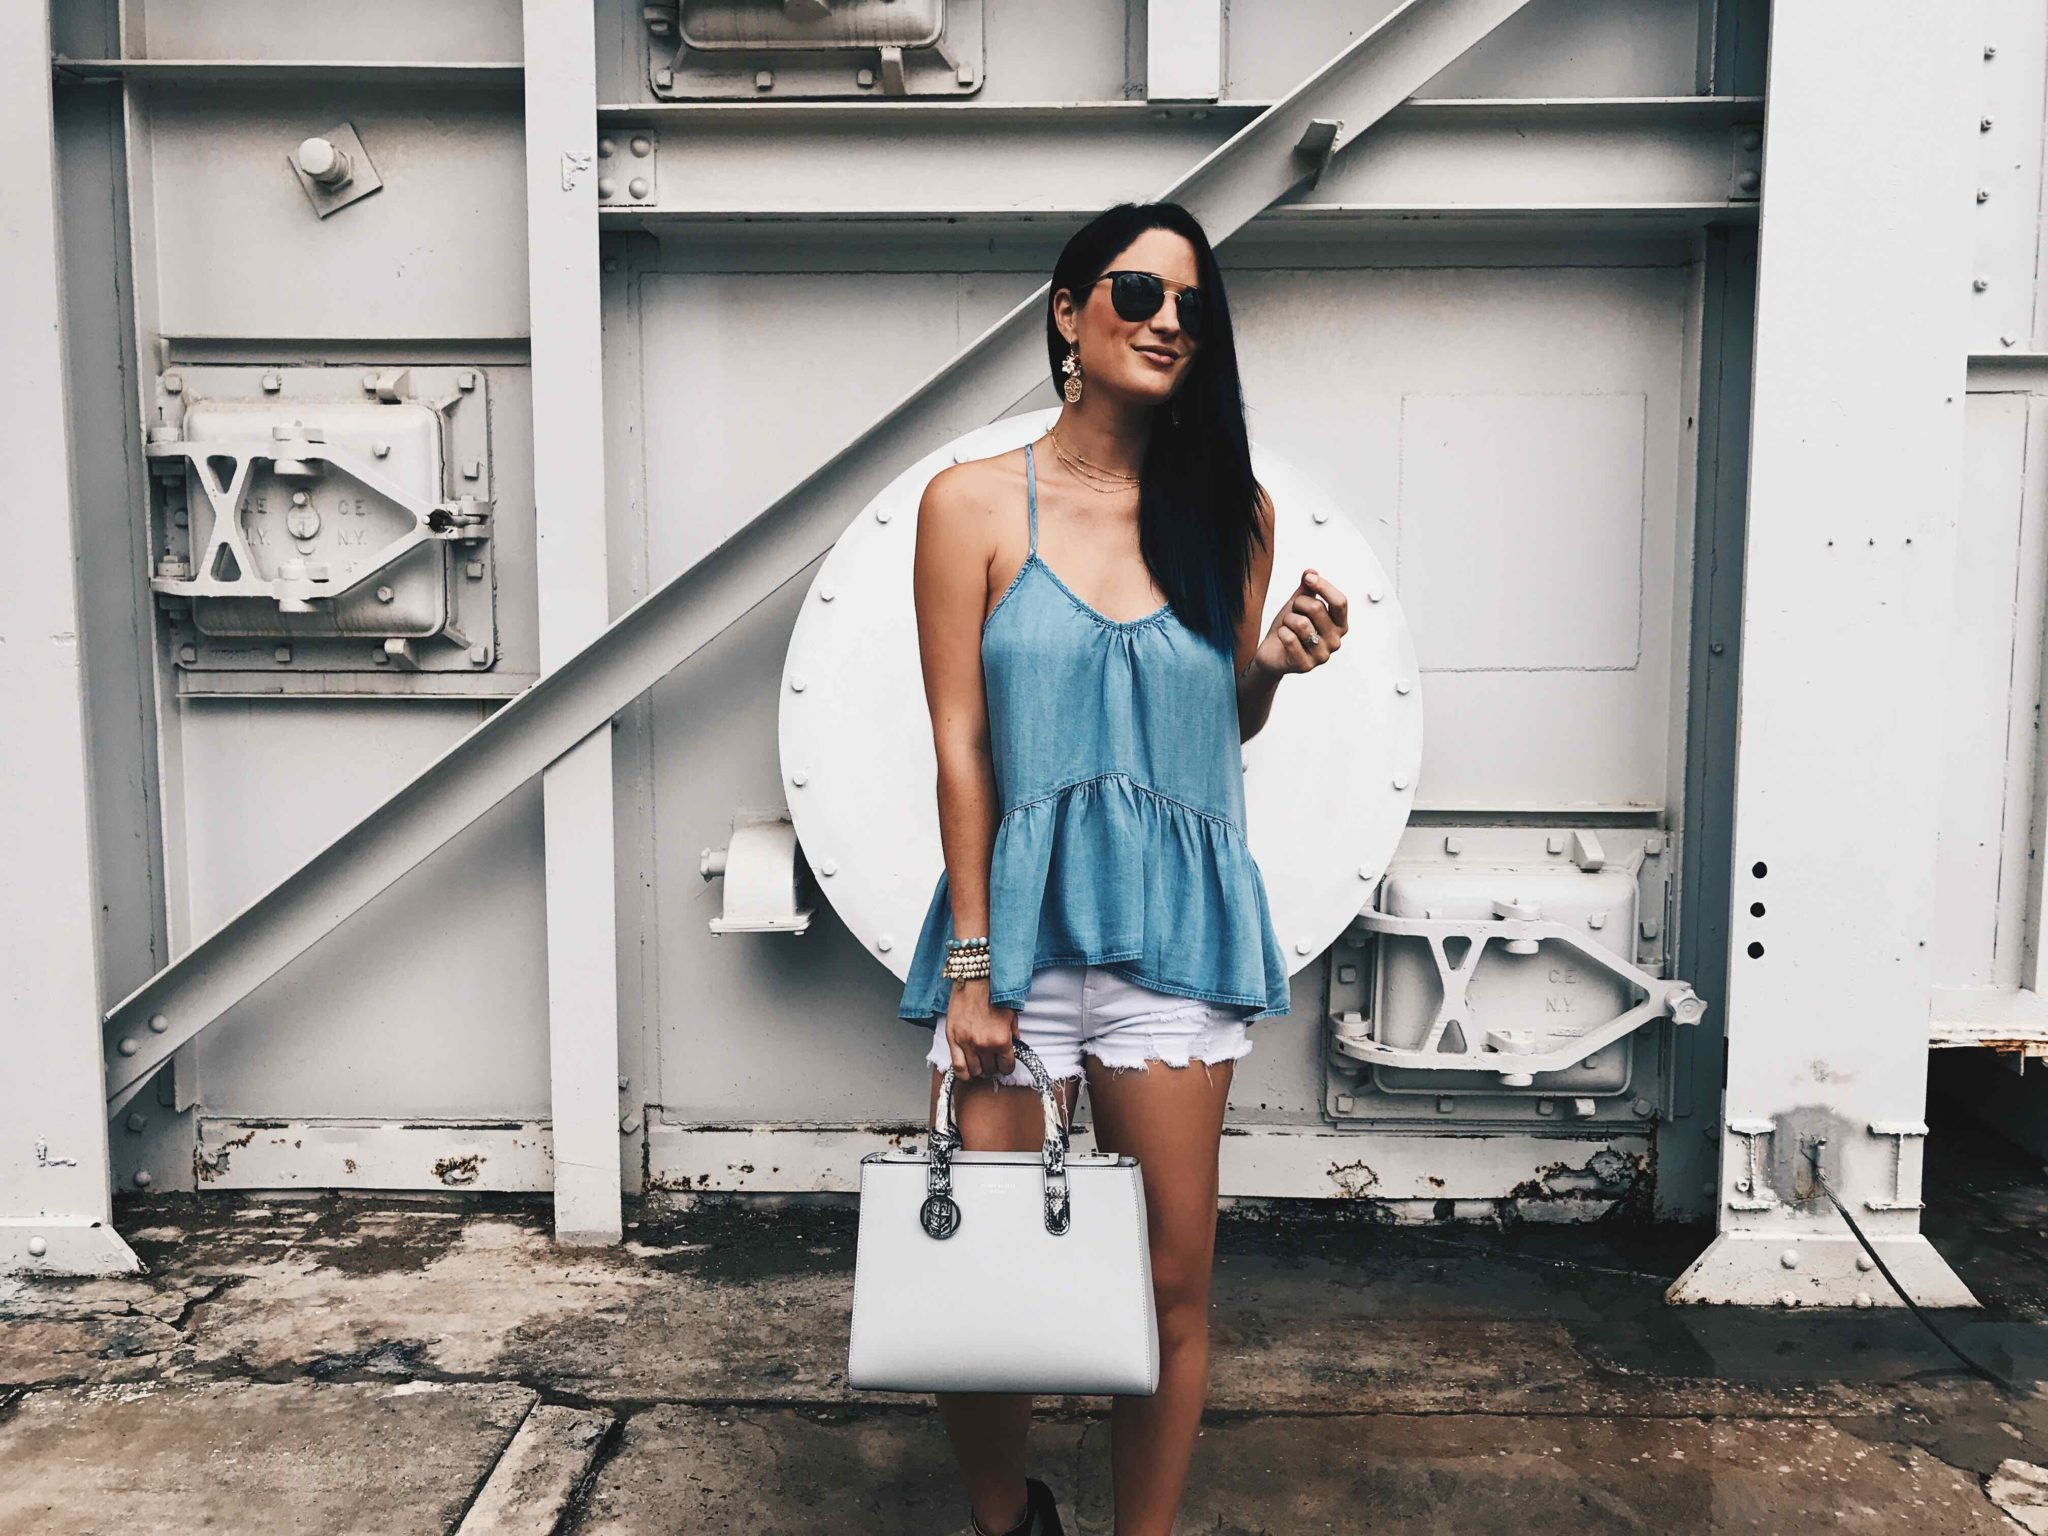 DTKAustin shares her go-to casual outfit for Sunday brunch in Austin. Chambray top by Lux & the Moon, Bag by Henri Bendel, jewelry from Baublebar. Click for more information and photos. | how to style a peplum top | how to wear a peplum top | how to wear white cutoff shorts | how to style white cutoff shorts peplum top style tips | summer fashion tips | summer outfit ideas | summer style tips | what to wear for summer | warm weather fashion | fashion for summer | style tips for summer | outfit ideas for summer || Dressed to Kill